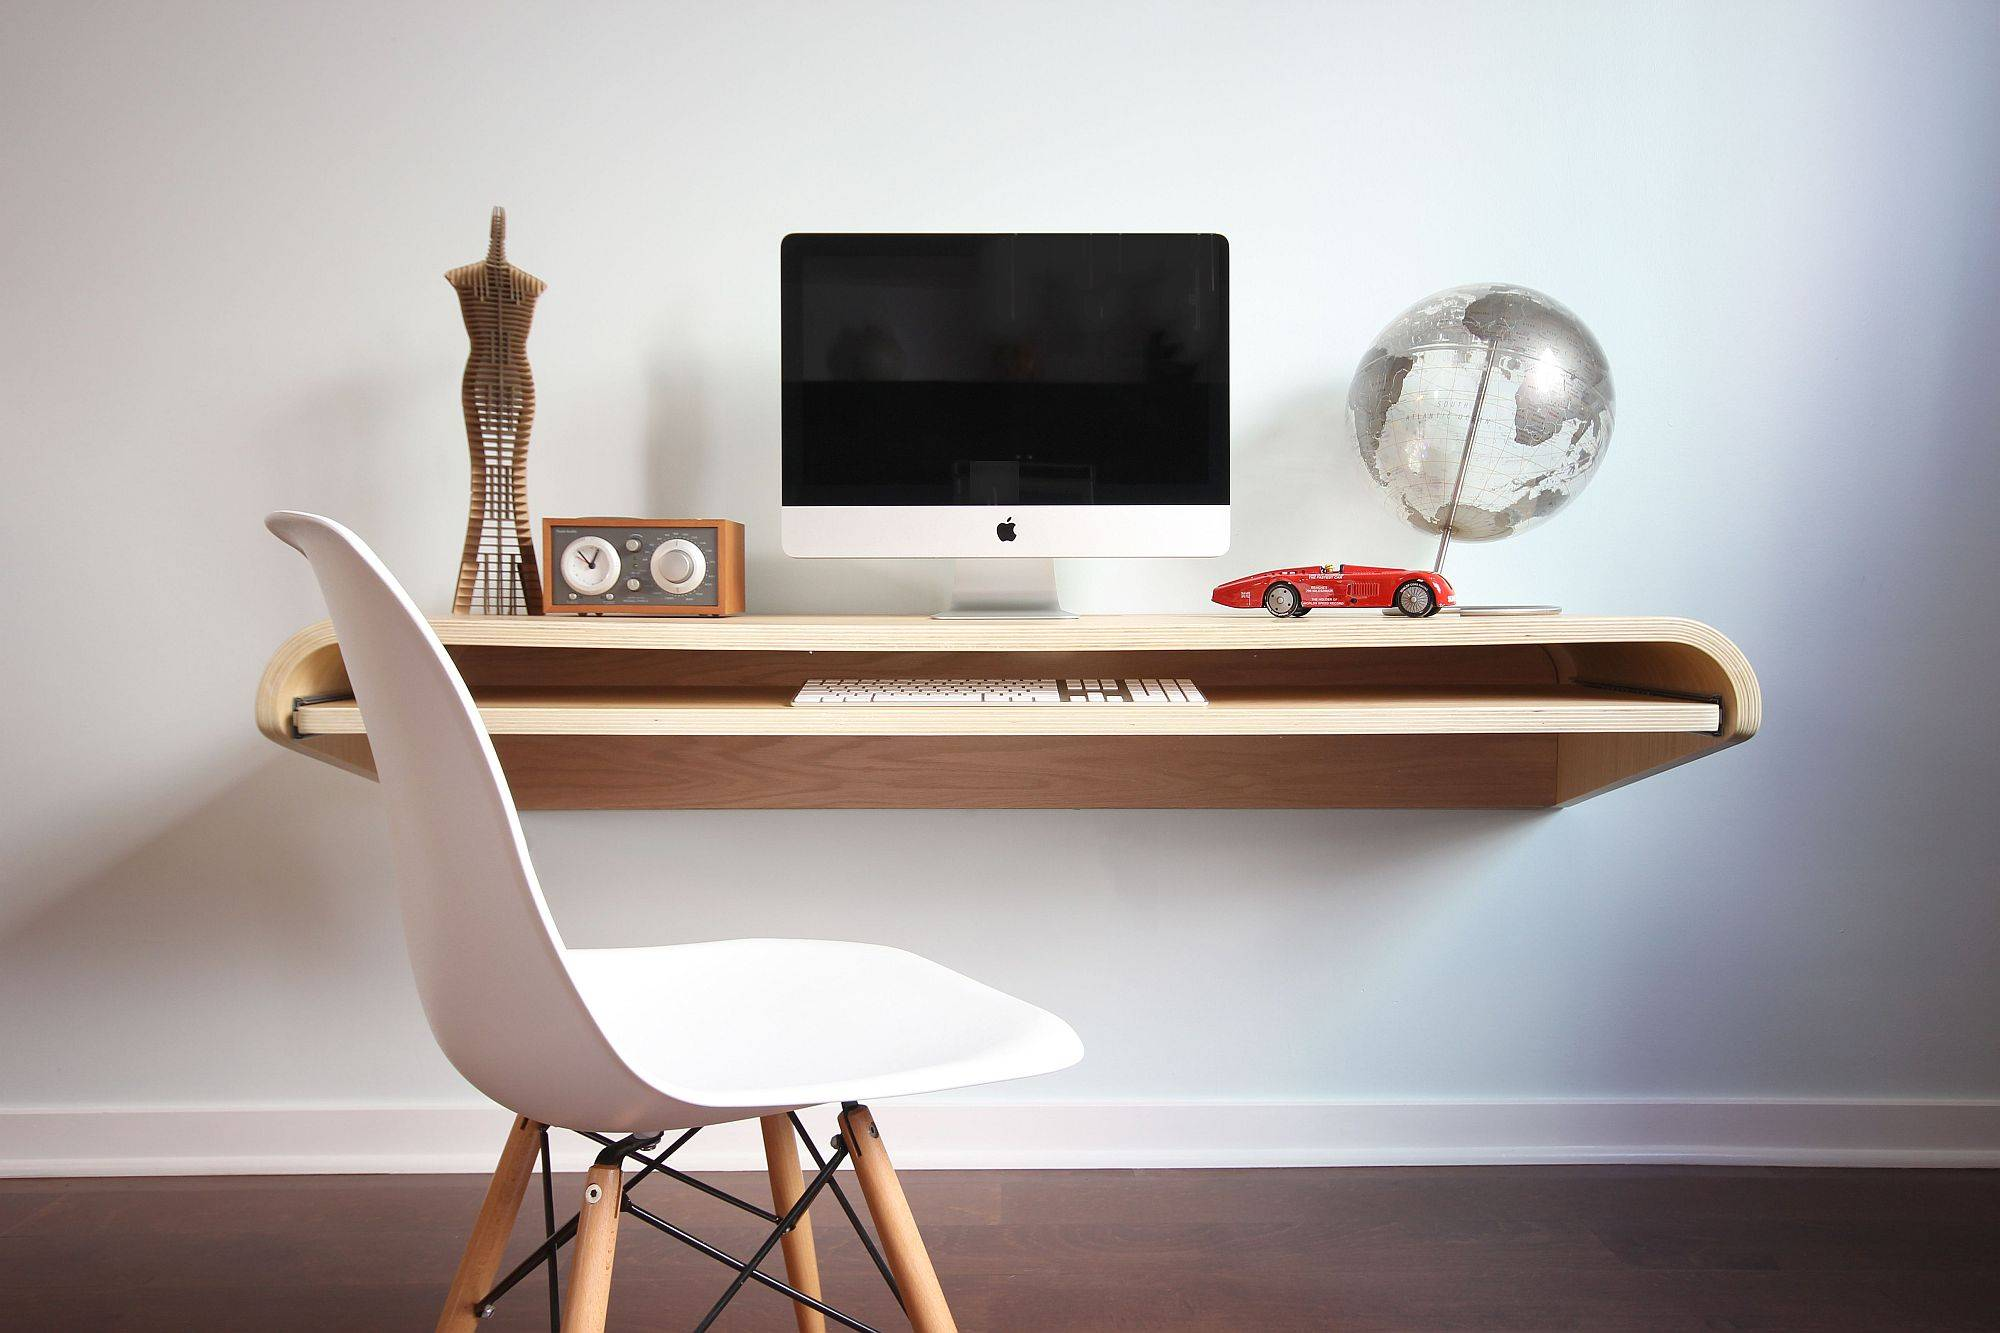 Contemporary-and-understated-Float-Wall-Desk-by-Dario-Antonioni-is-an-absolute-delight-39445